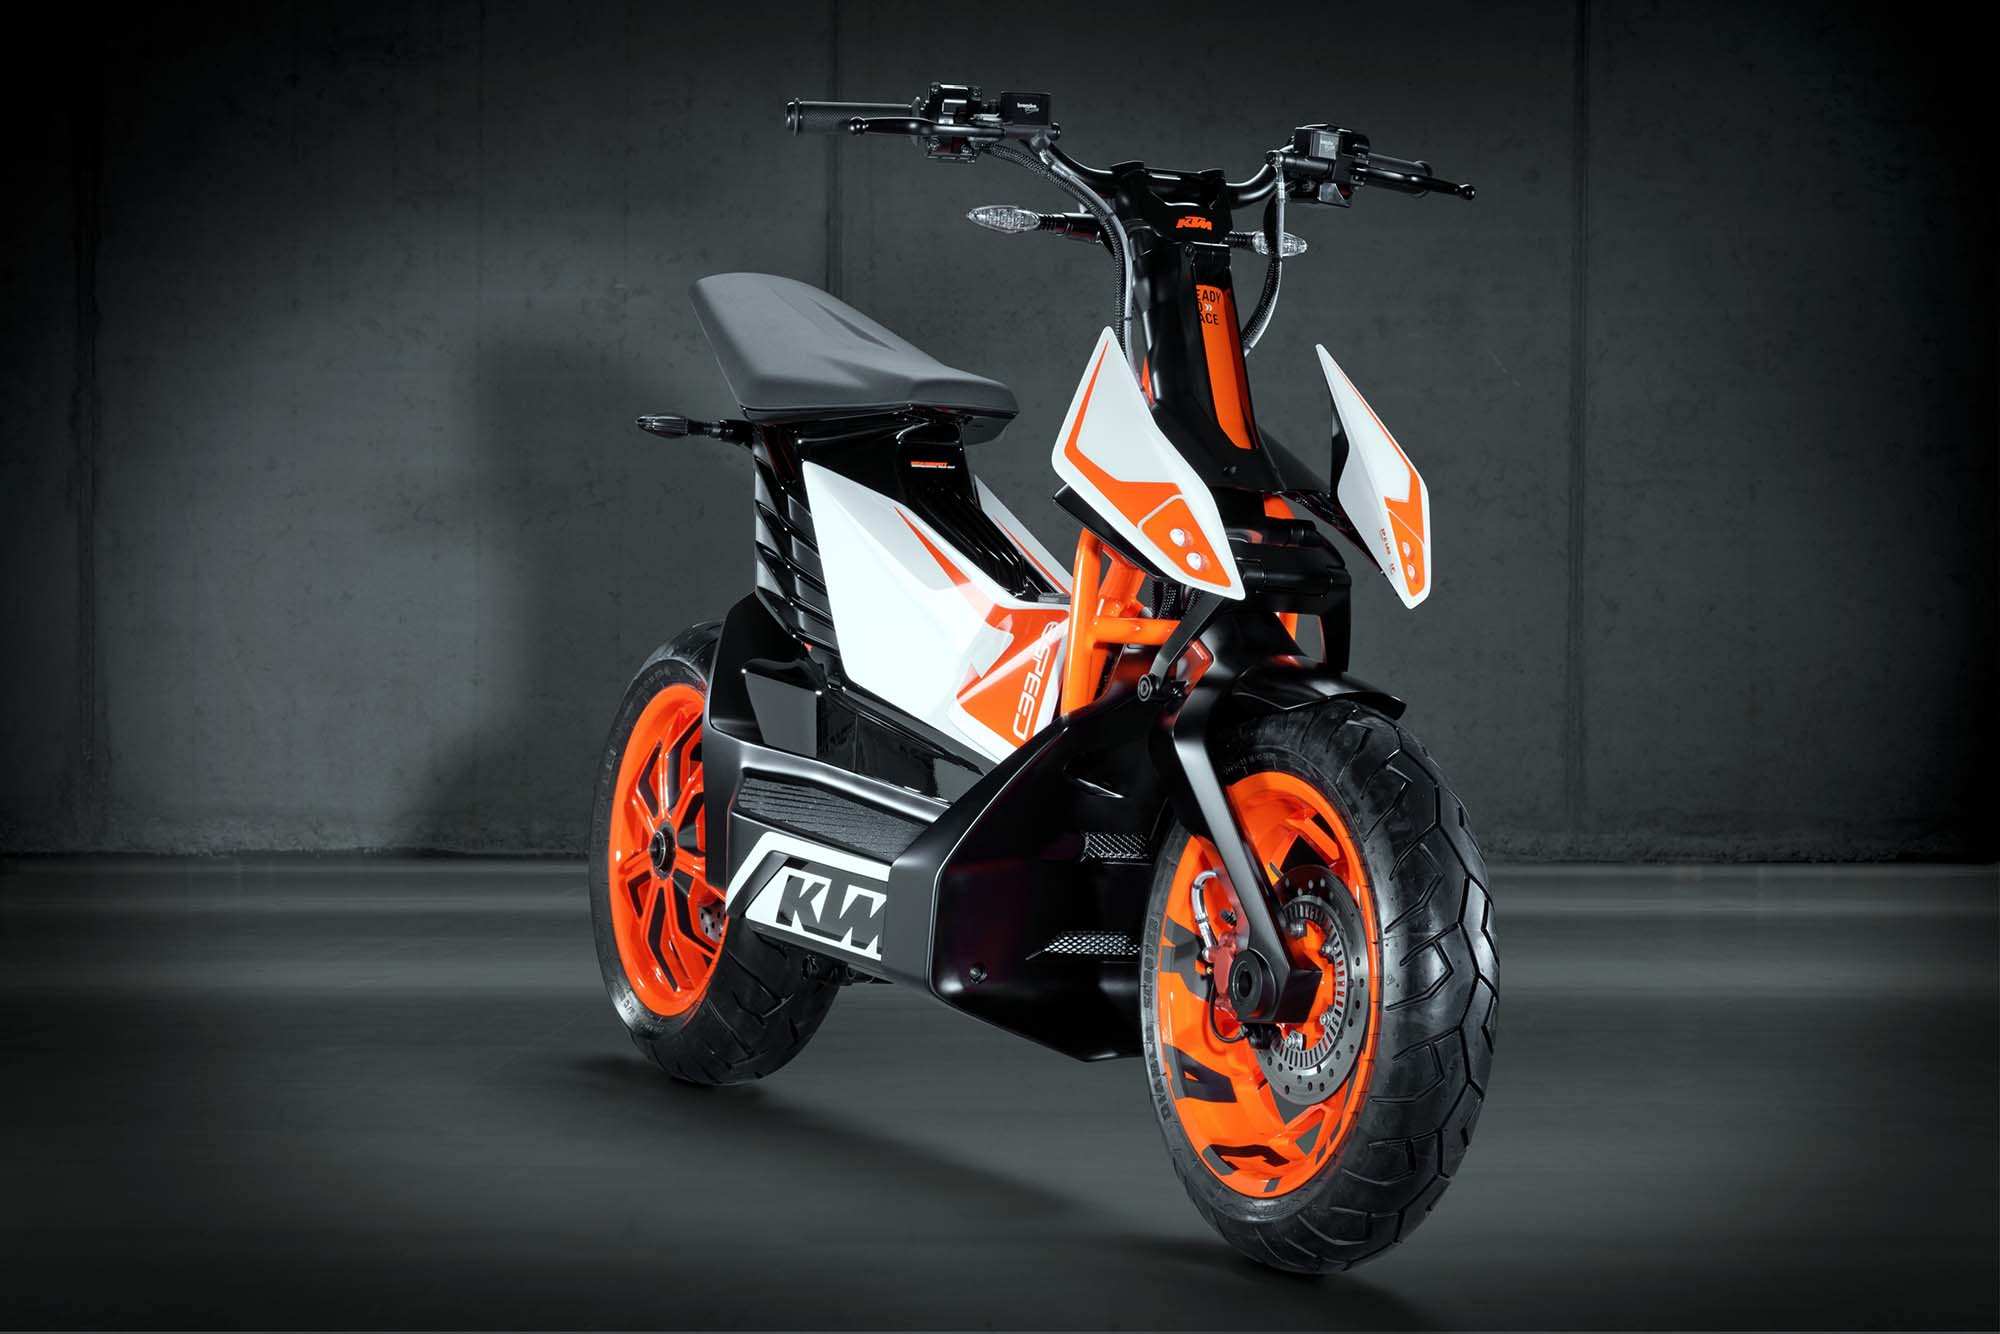 Ktm Electric Scooter Price >> KTM E-Speed Available in 2015 - KTM Freeride E in 2014 - Asphalt & Rubber